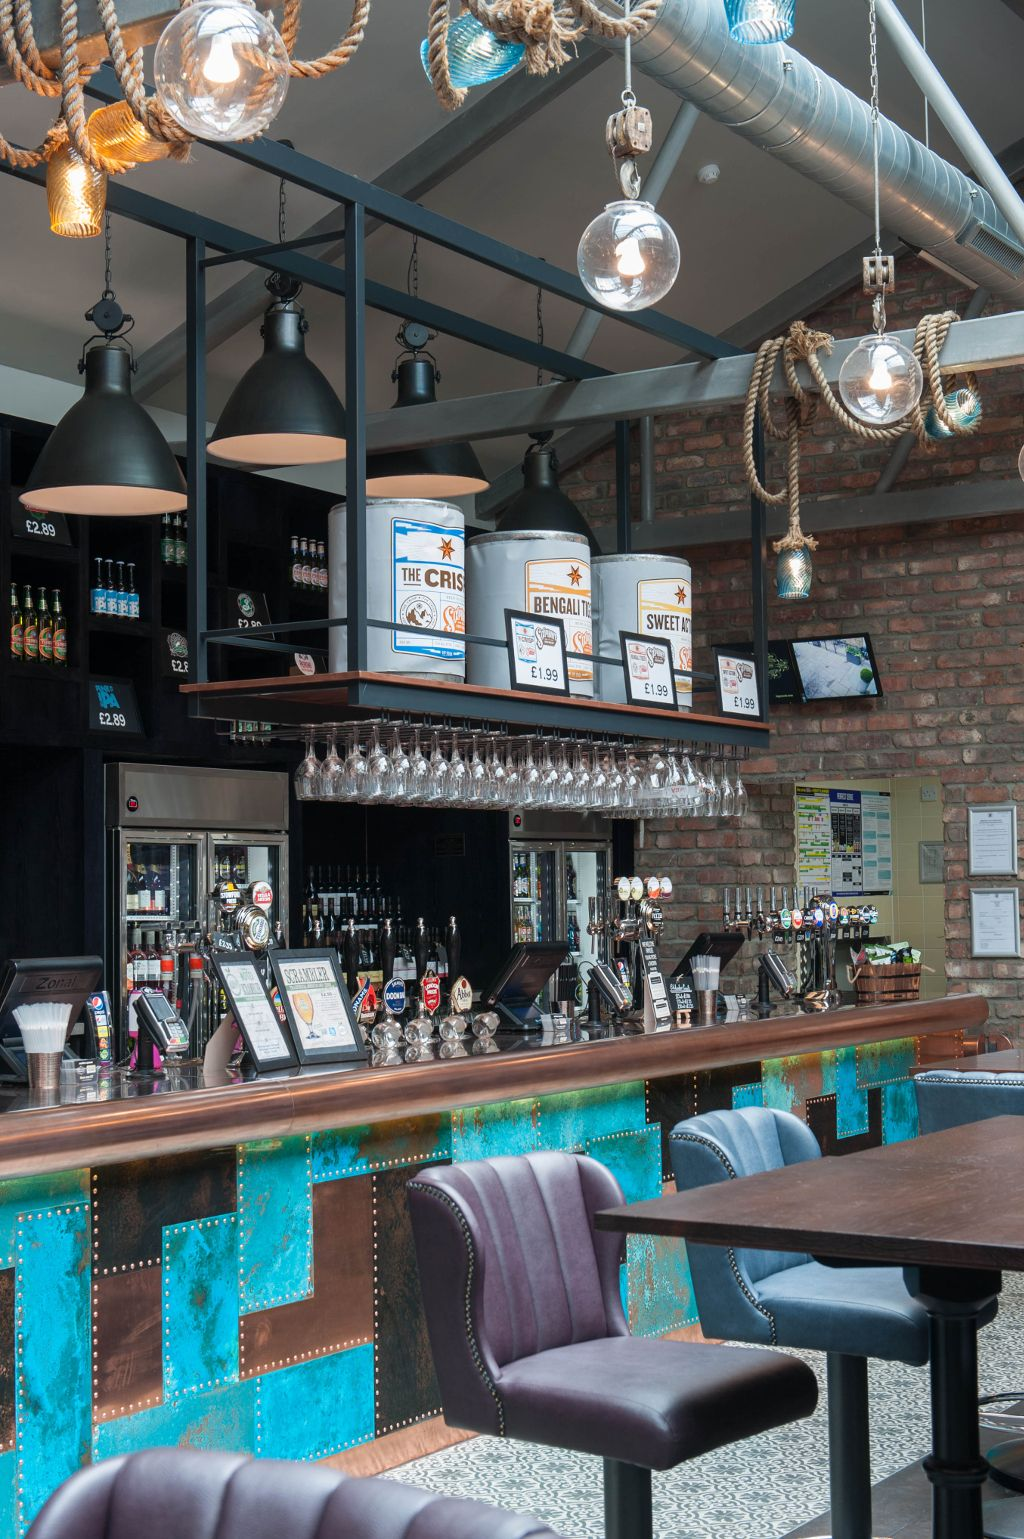 Restaurant Bar Design Awards Shortlist Pub UK - 7 important interior design features restaurants